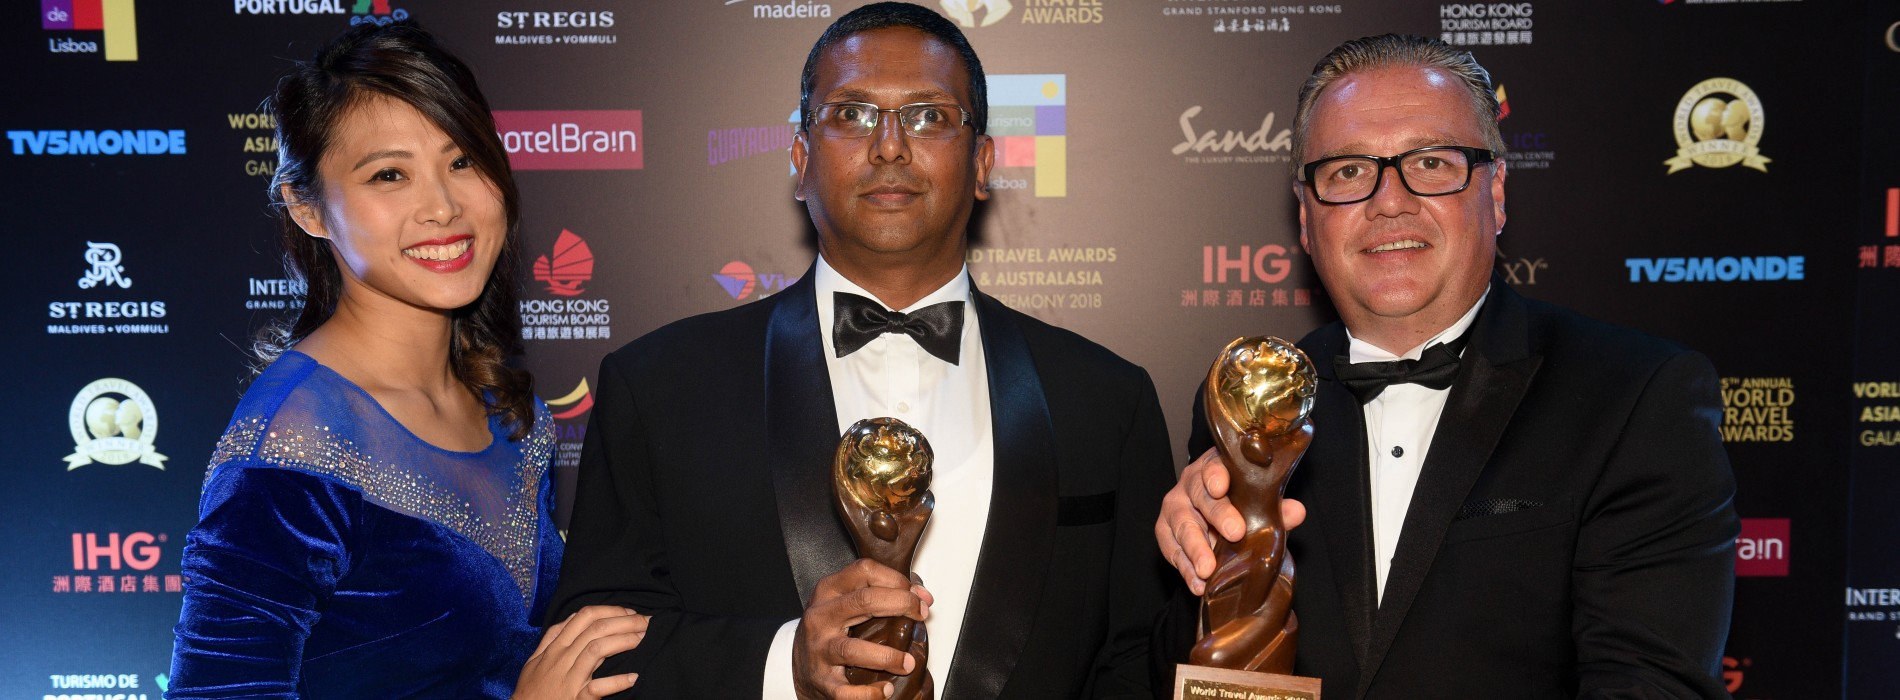 SriLankan Airlines awarded two titles at the World Travel Awards 2018 Asia & Australasia